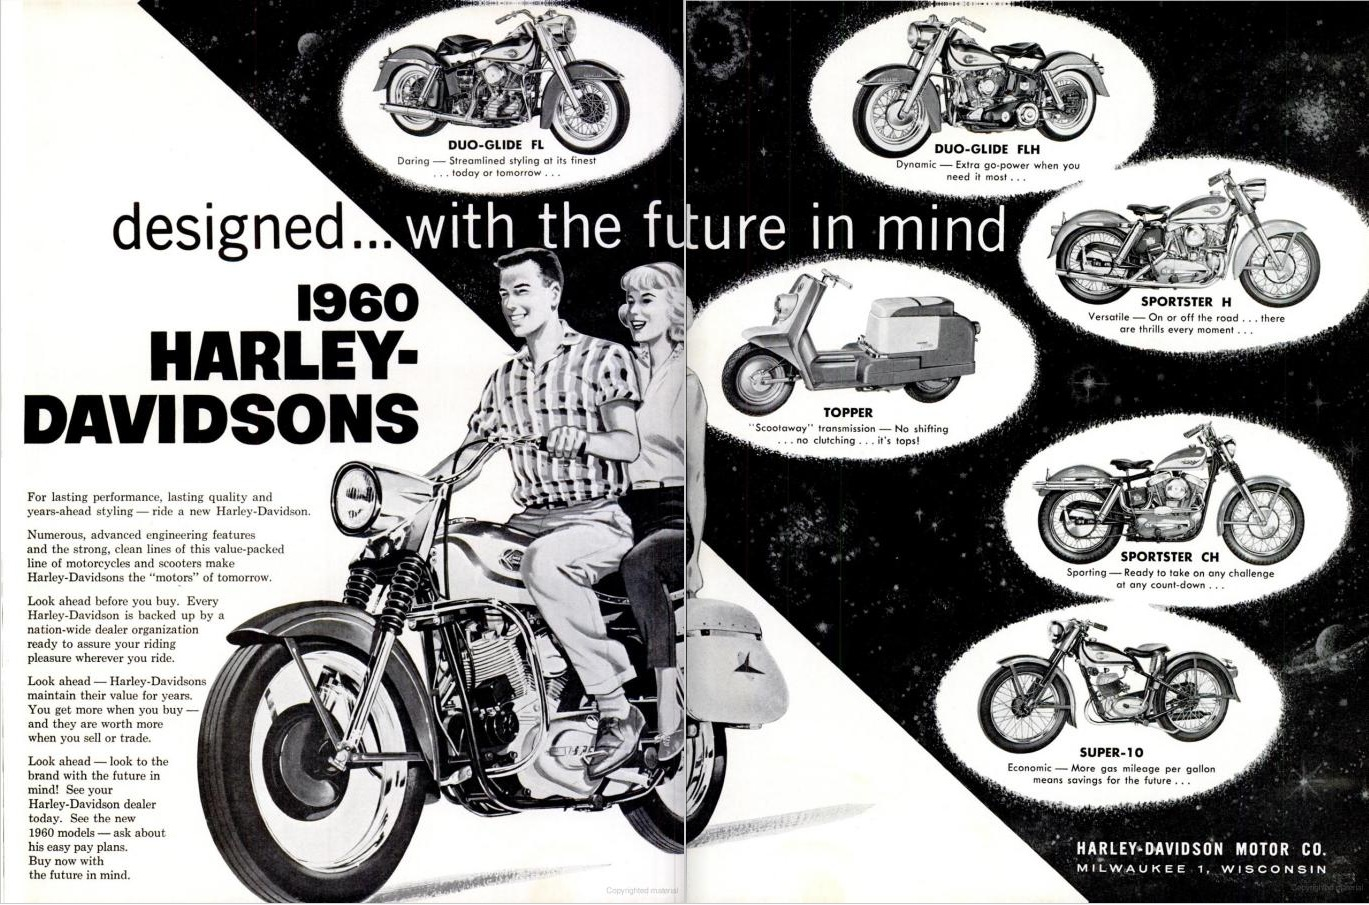 marketing of harley davidson essay Harley-davidson marketing strategies filed under: essays tagged with: motorcycle harley-davidson understands that it is as important to maintain their current enthusiasts as it is to develop new ones no where is this more evident than in their mission statement: we fulfill dreams.